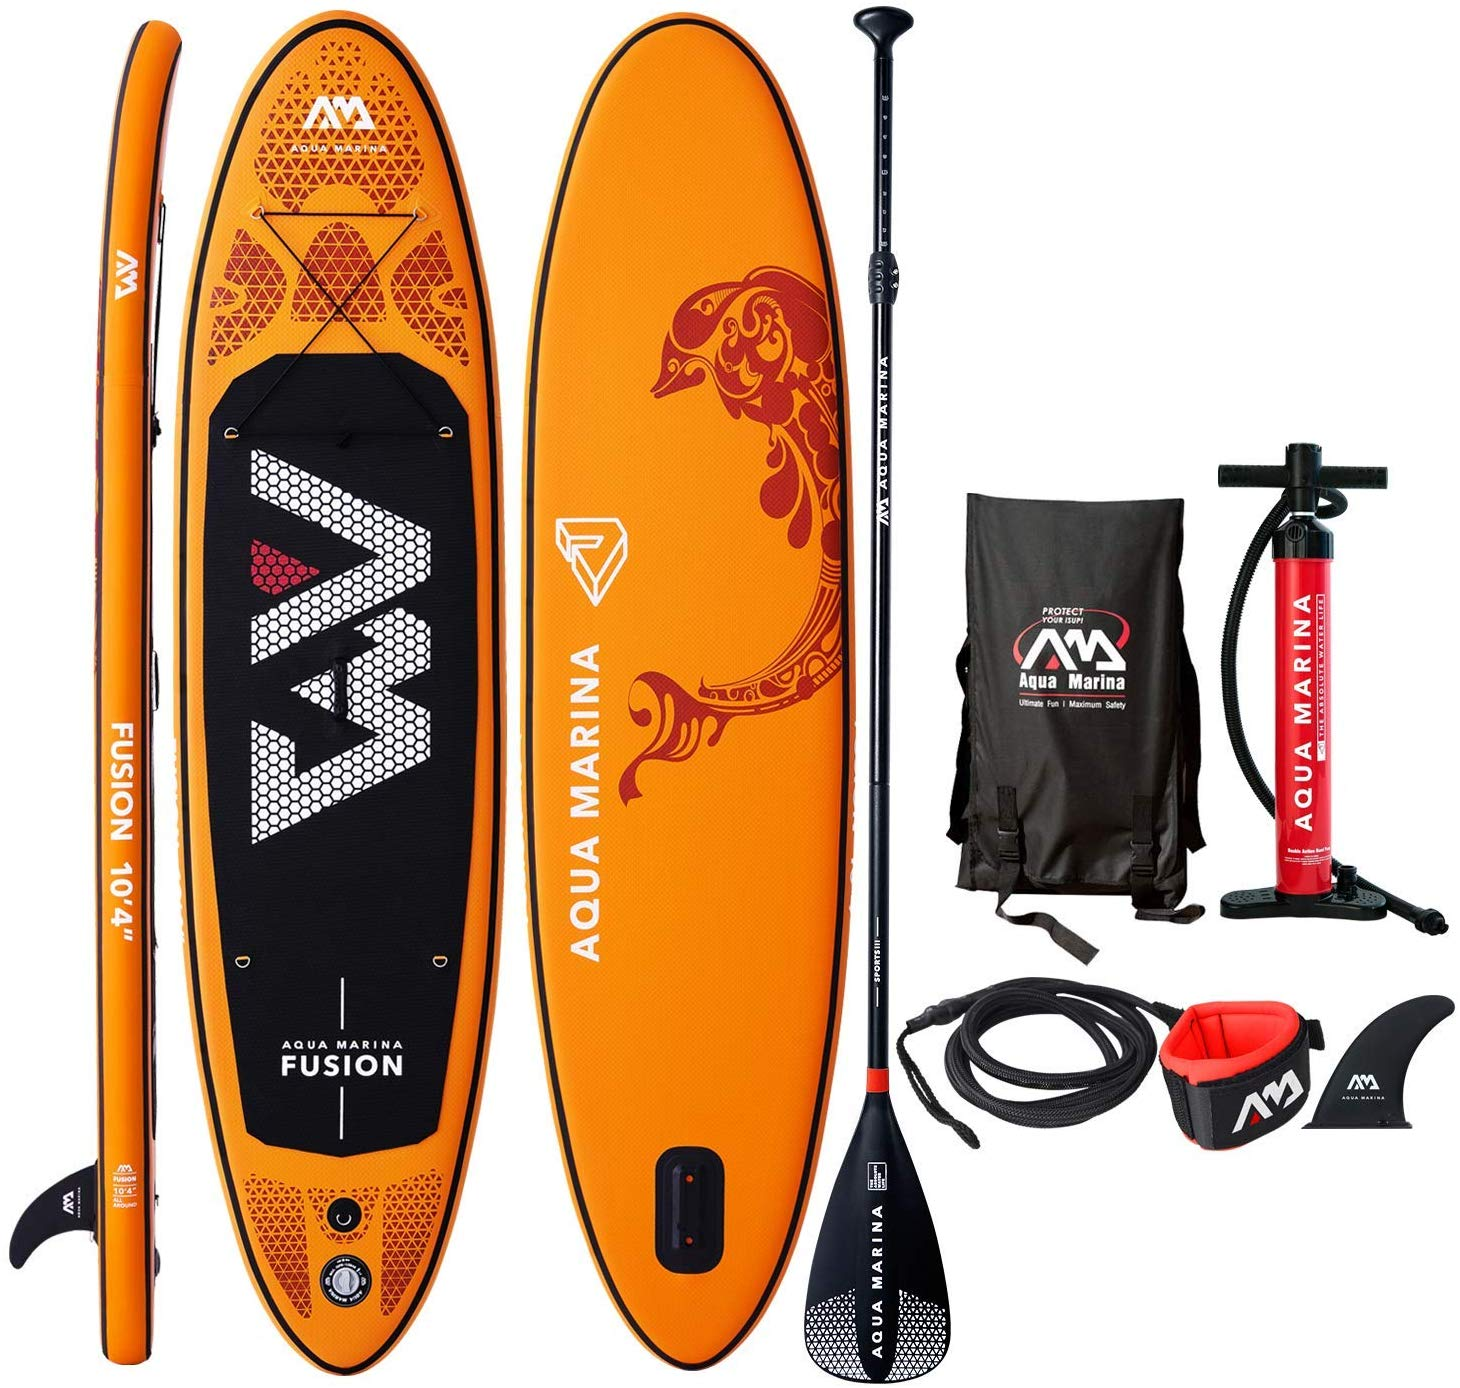 Aqua Marina Fusion SUP Review